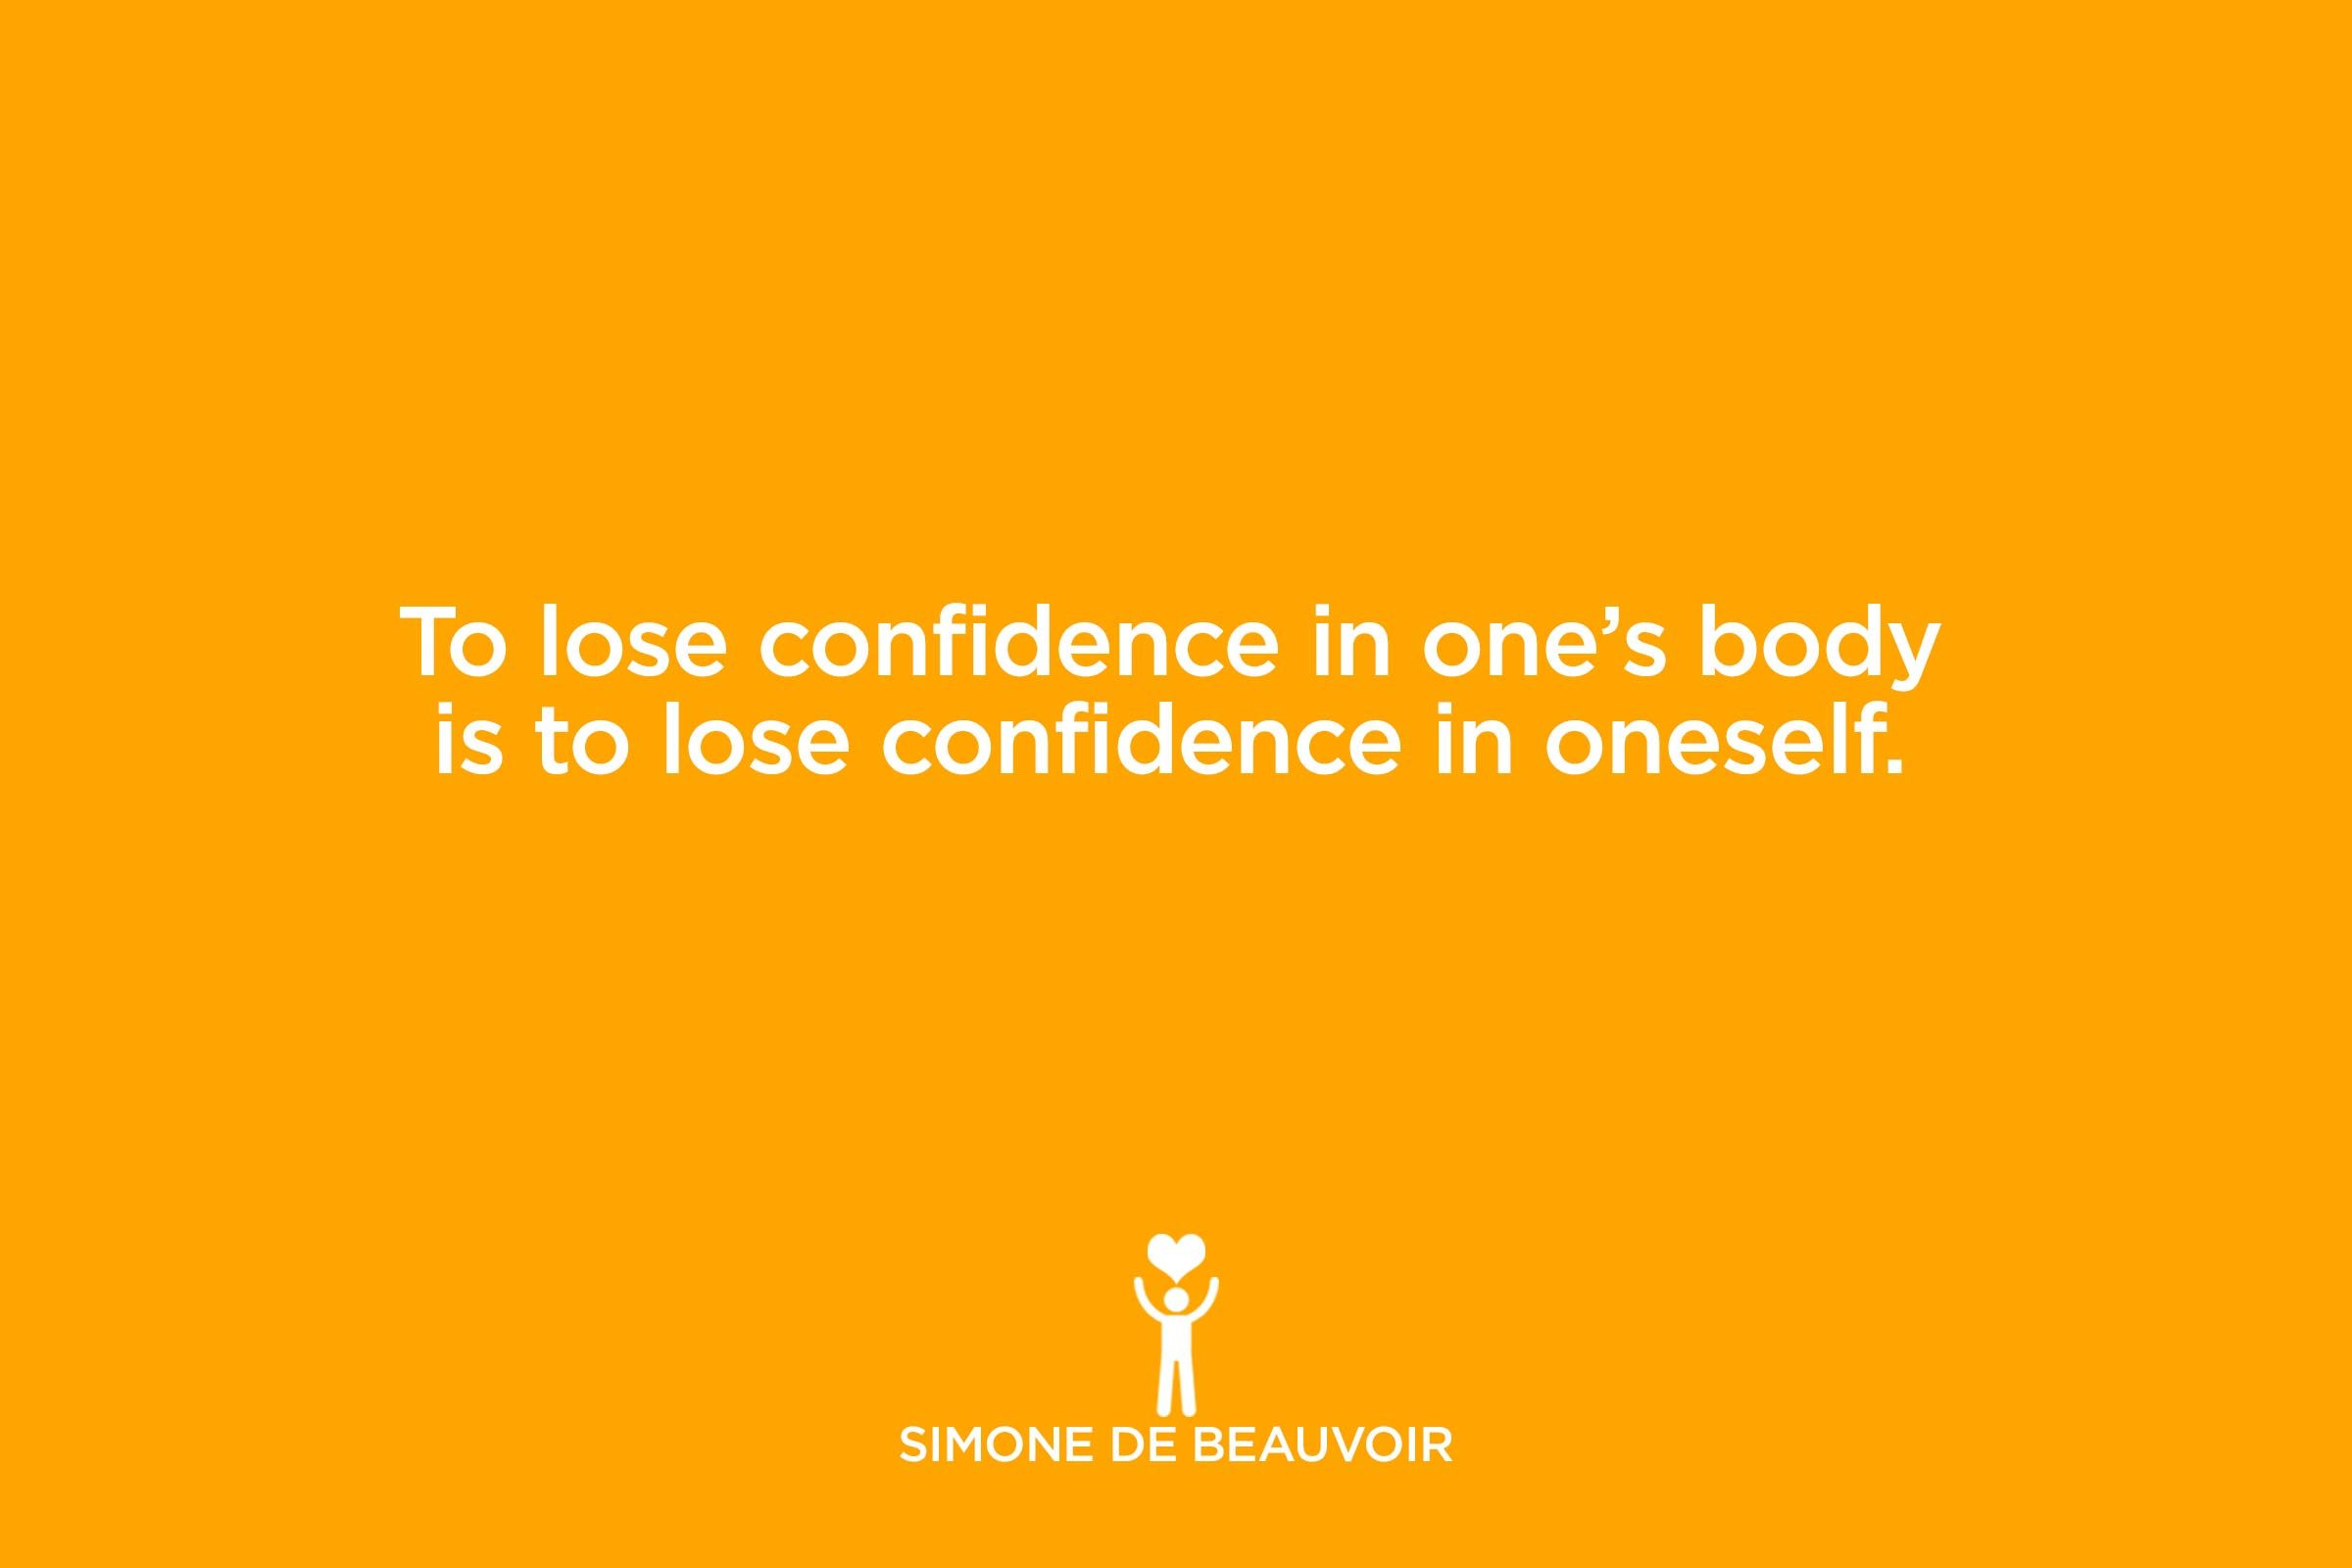 Inspiring Quotes To Help You Love Your Body Readers Digest